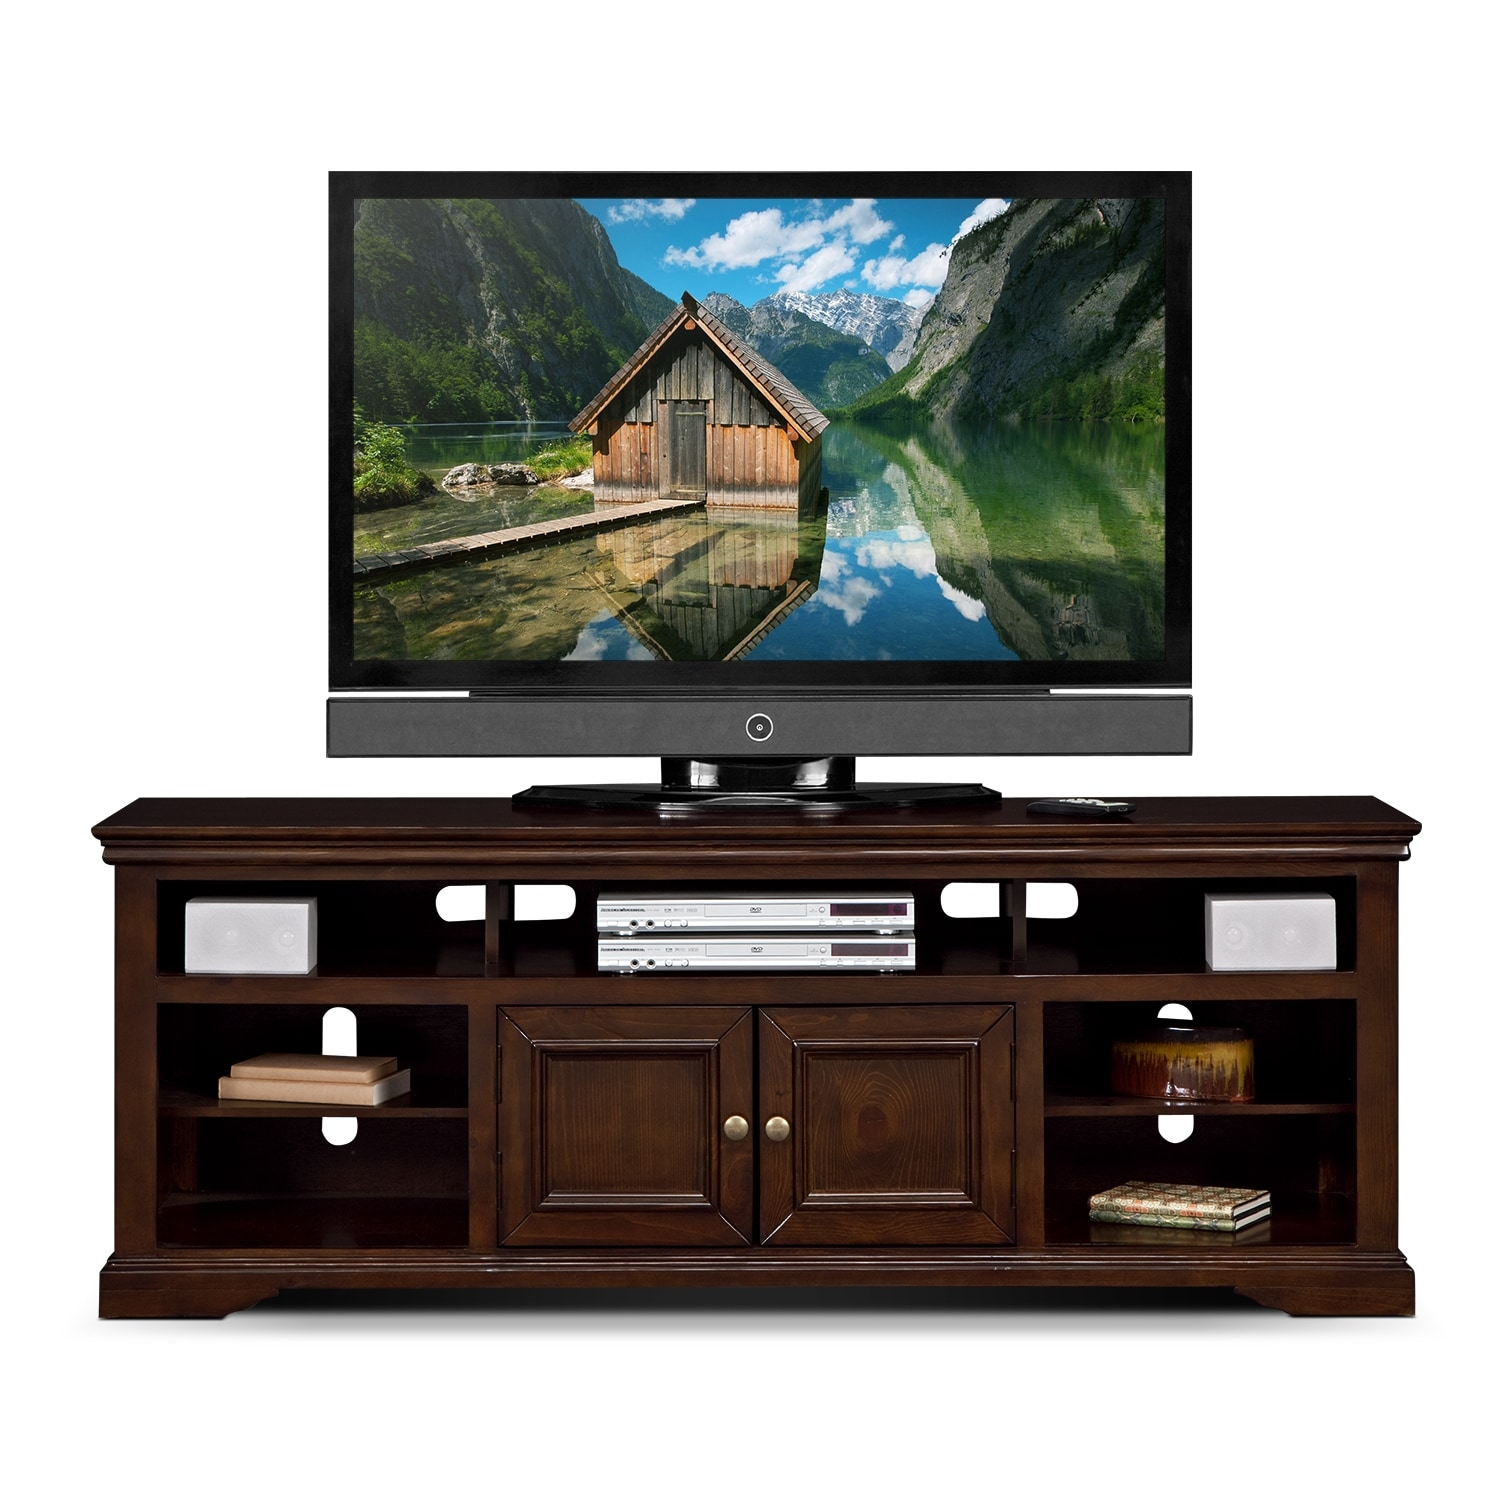 "American Pride Furniture Tv Stand: Jenson 70"" TV Stand - Cherry"